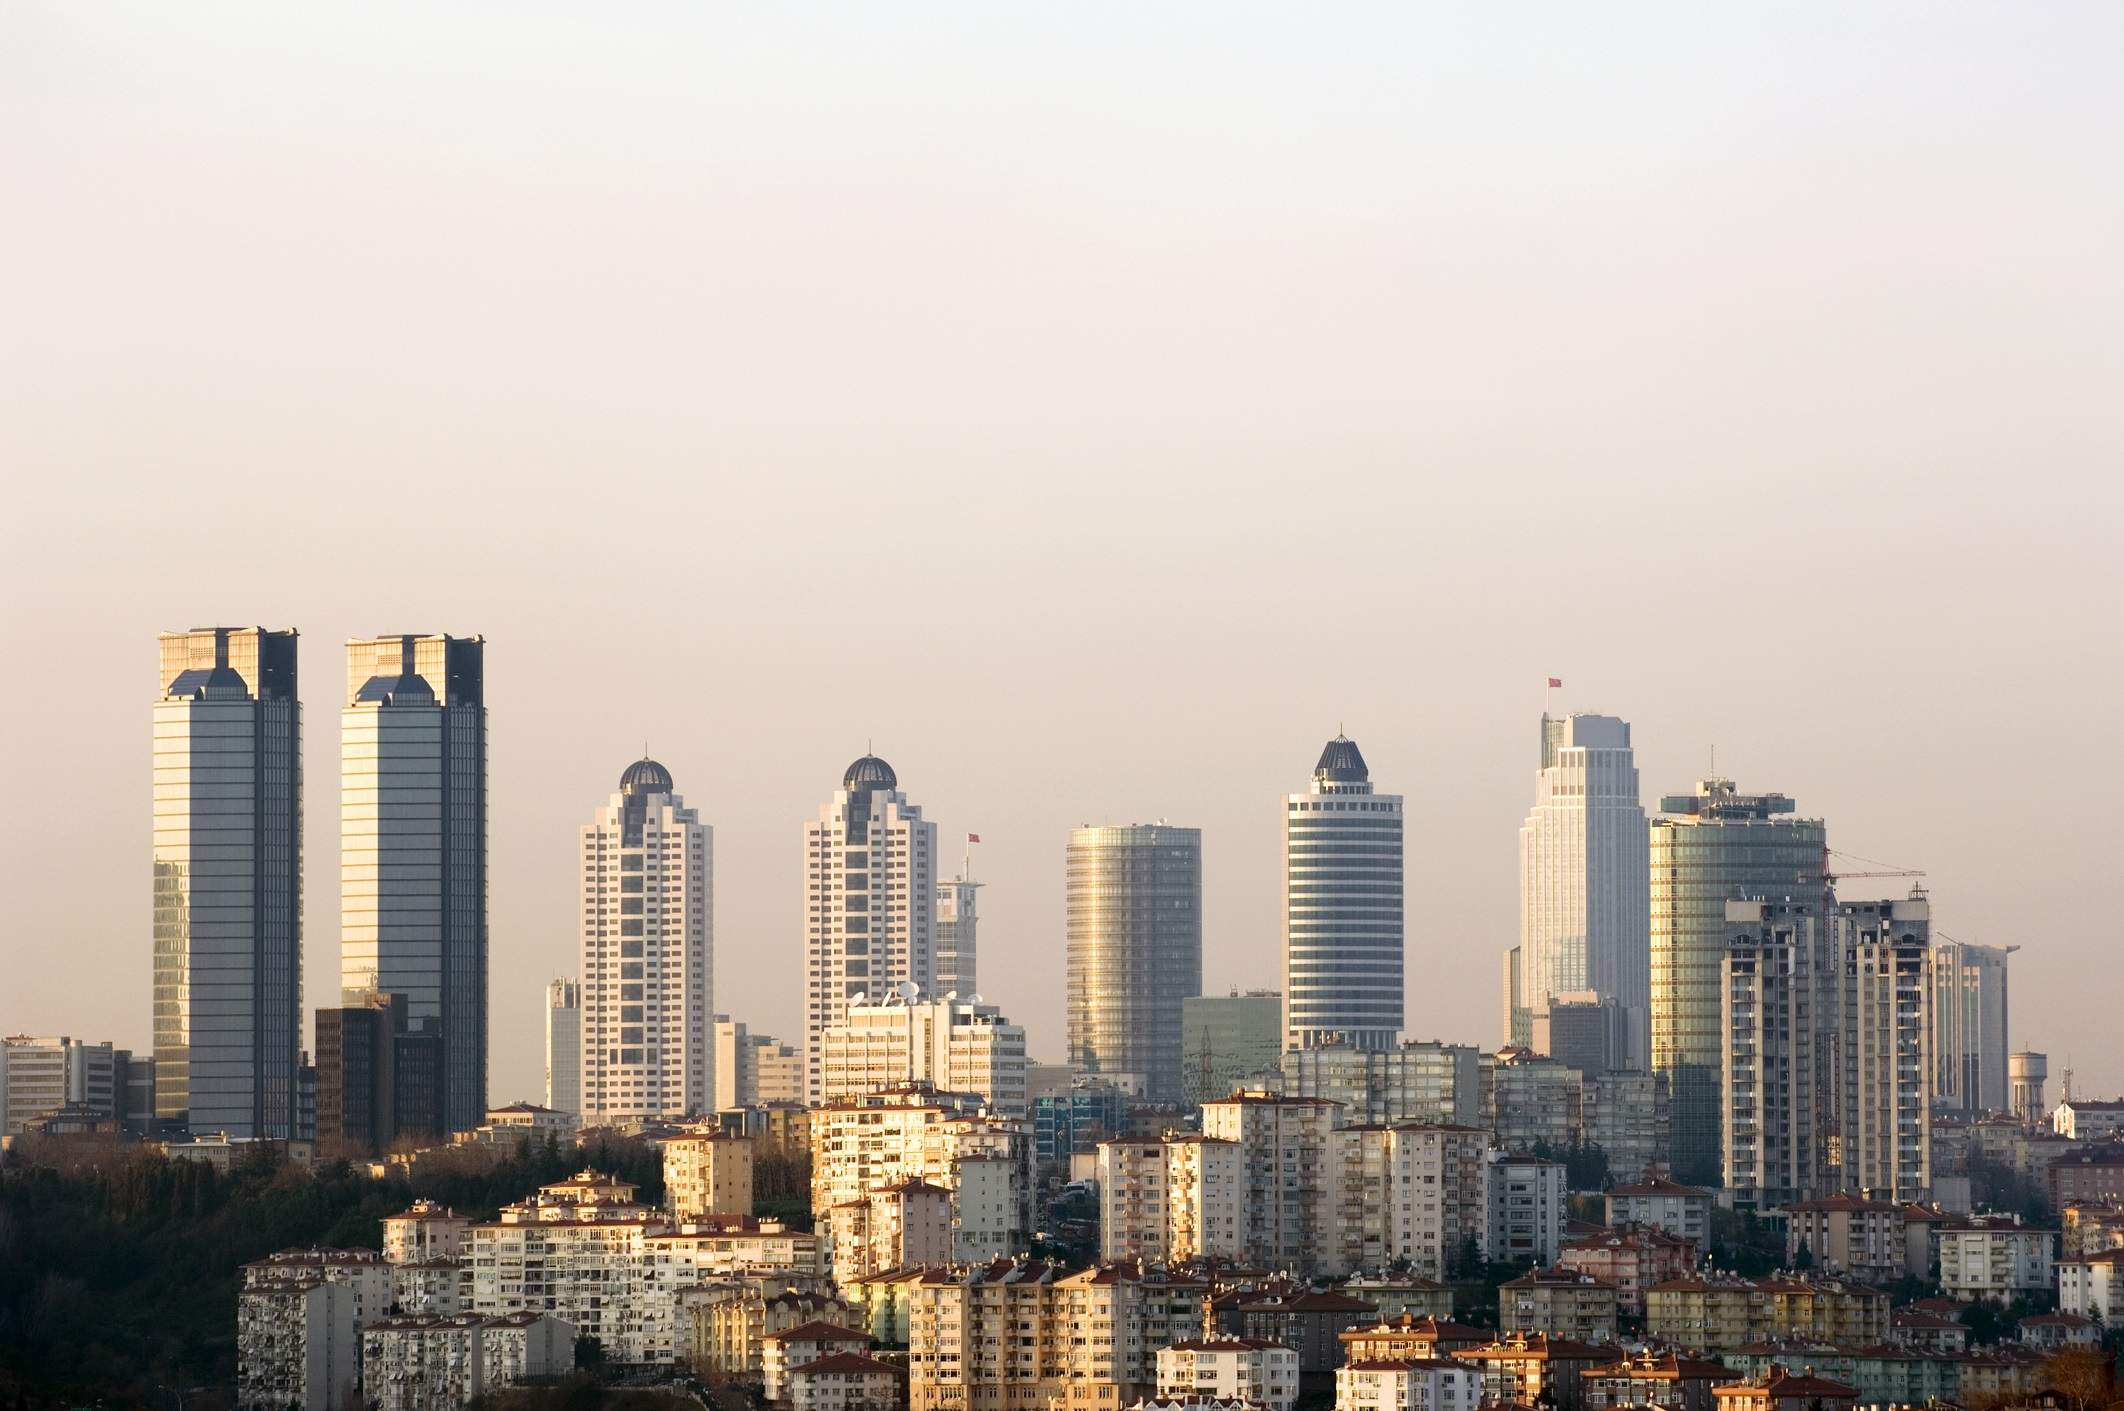 Wall Street Heads East: Istanbul International Financial Centre sees investors look to cash in on bricks and mortar